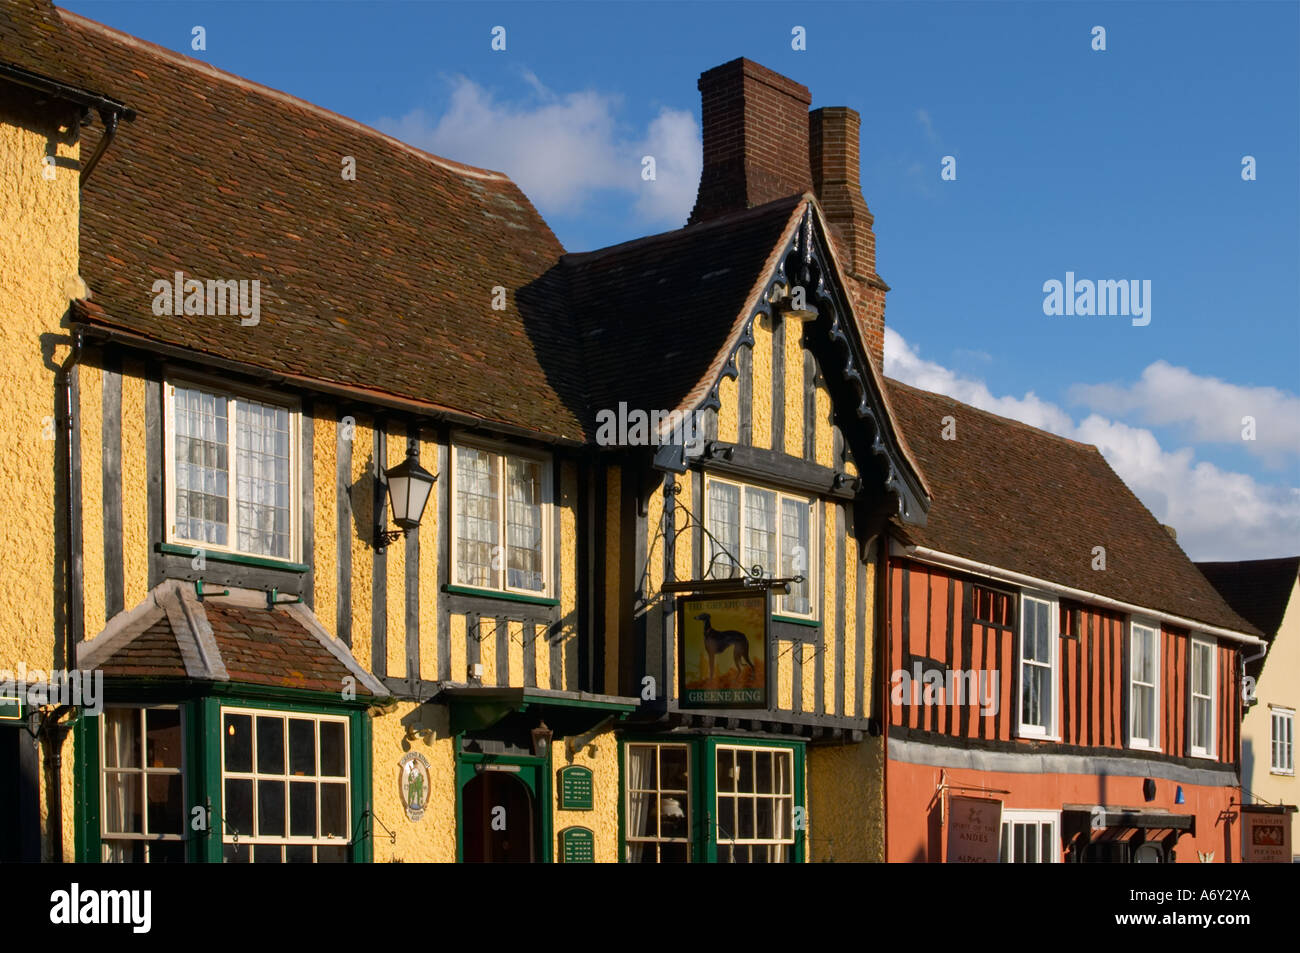 High Street in Lavenham Suffolk England - Stock Image